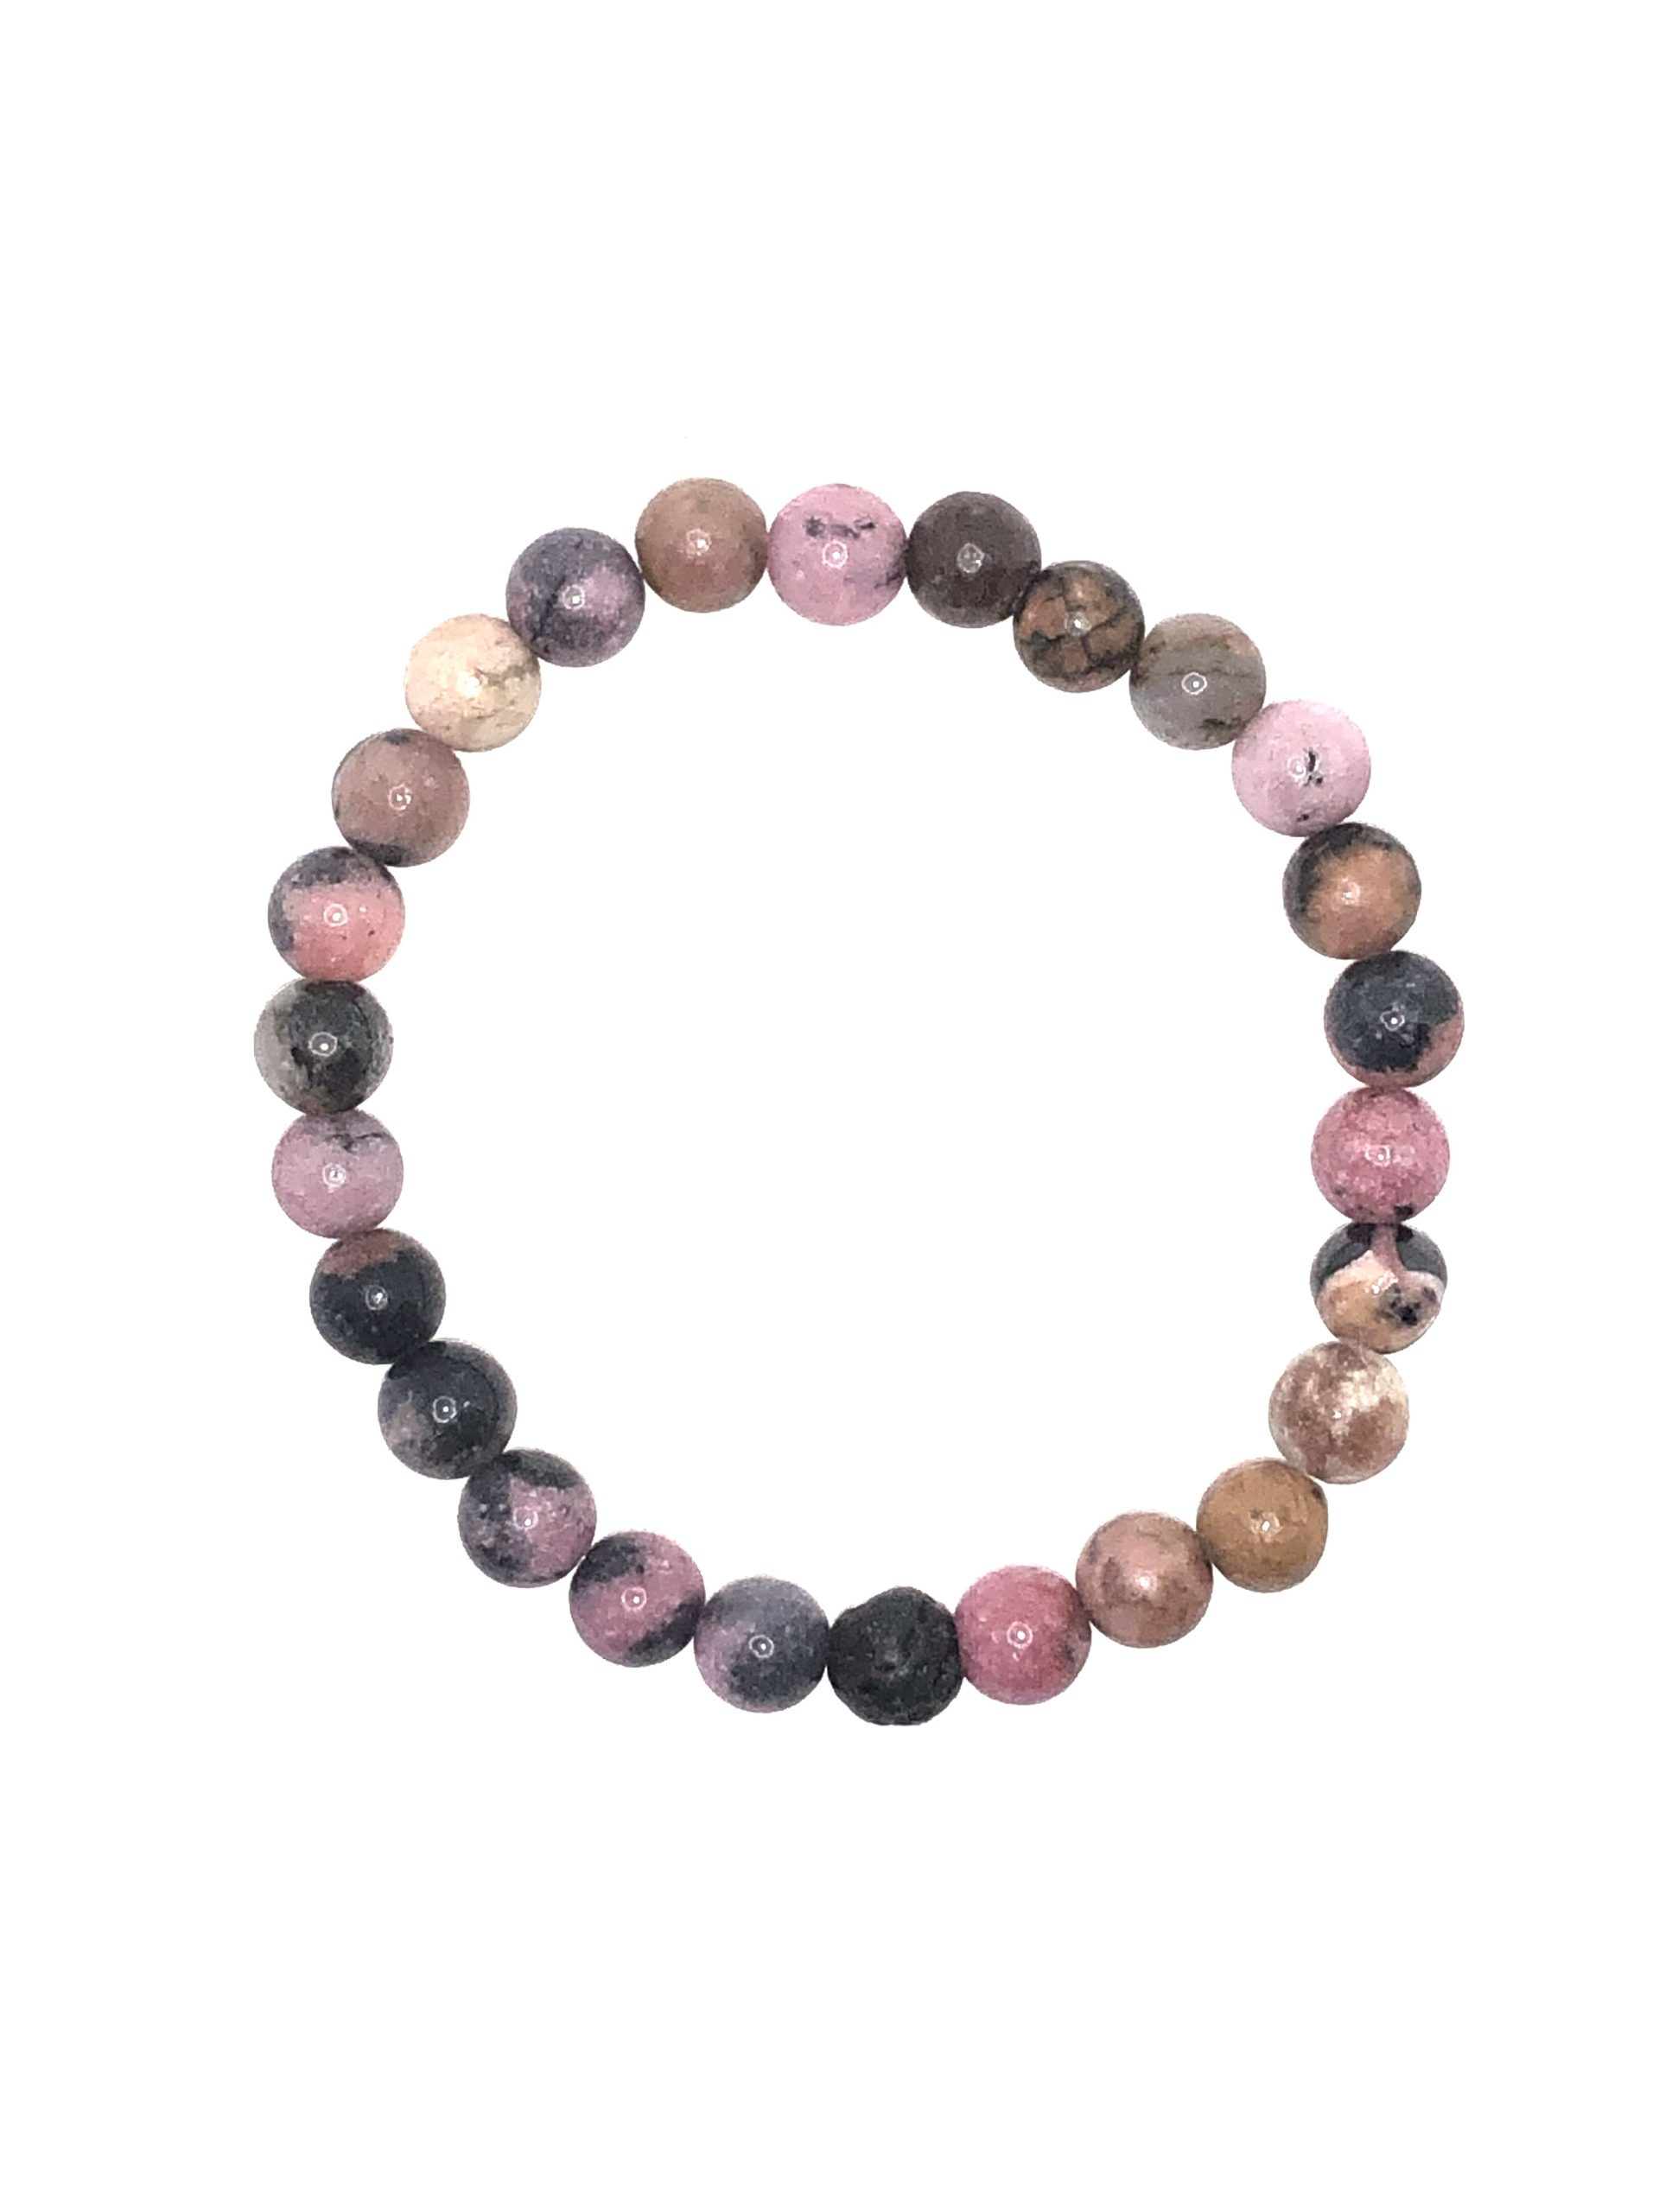 Rhodonite Diffuser Beaded Bracelet for sale online